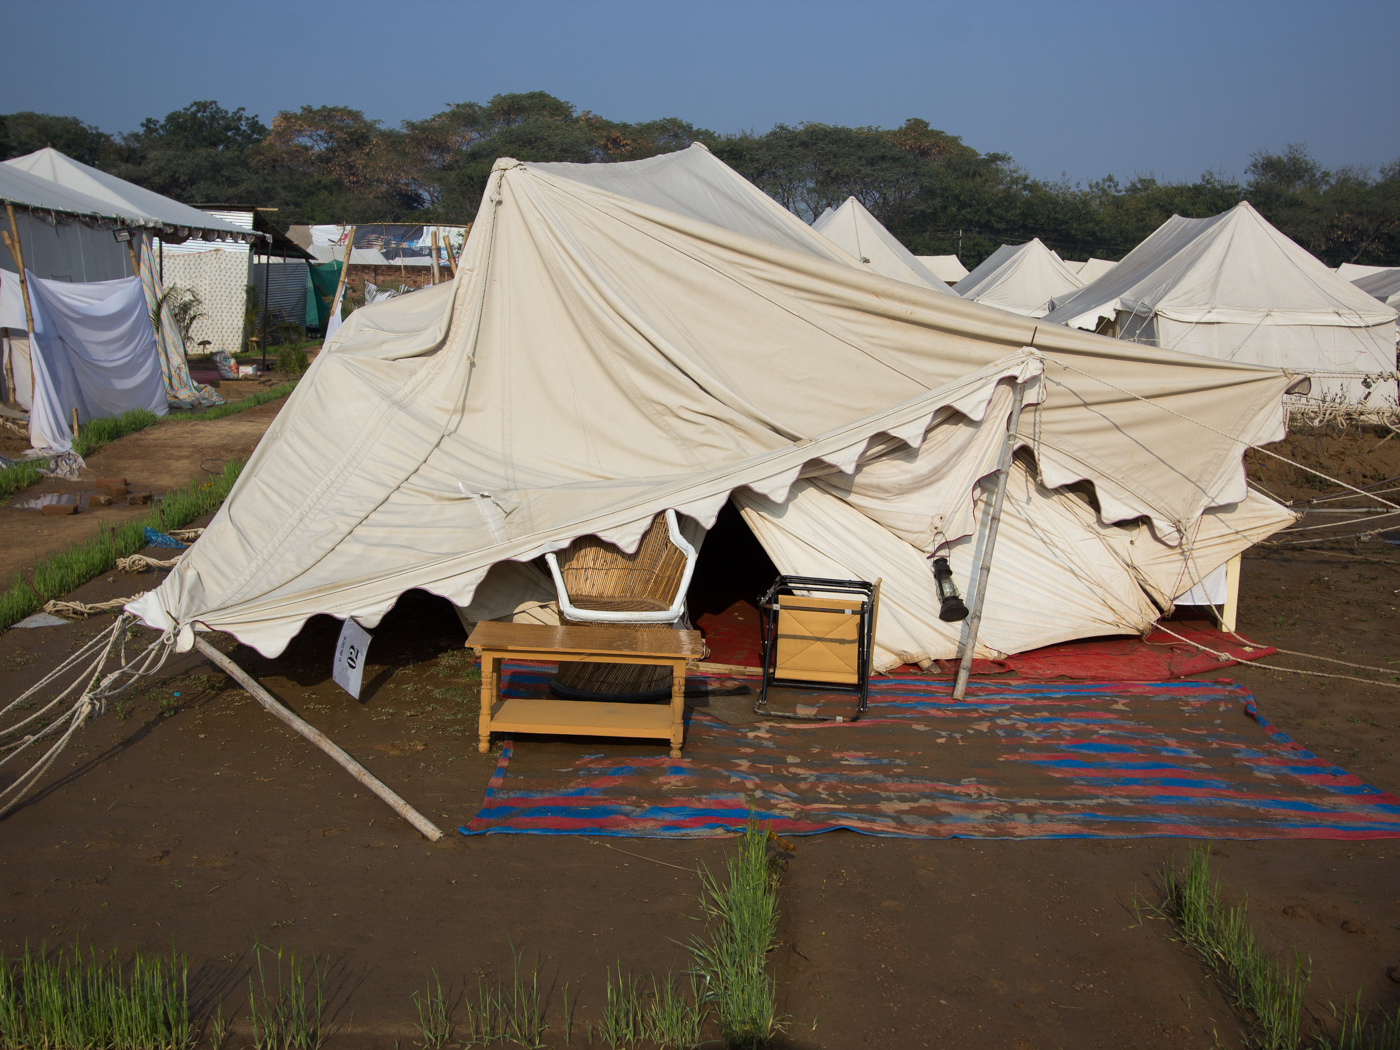 Yech what a flooded tent looked like post storm and furniture clear out. Muddy. Ah well letu0027s go eat in the dining tent. & Hello Talalay: Camping At The Kumbh